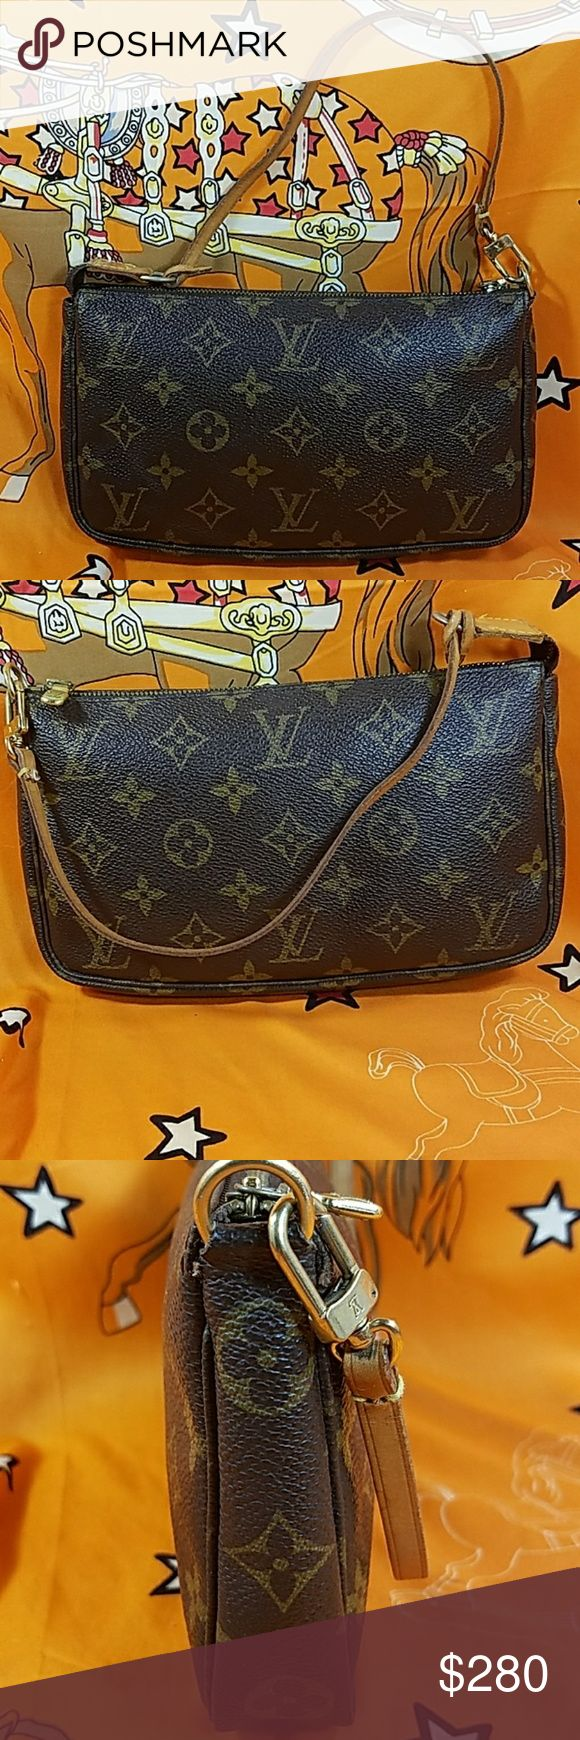 "Authentic Louis Vuitton Monogram Pochette The outer canvas is in good condition. The leather strap (drop about 6.25"") is slightly darkened. Inside is nice and clean. This is a pretty nice pre-owned bag. Date code VI0032. It made in France. Dimension:( about) 5, 8 & 1.25. No trade please. Louis Vuitton Bags Clutches & Wristlets"